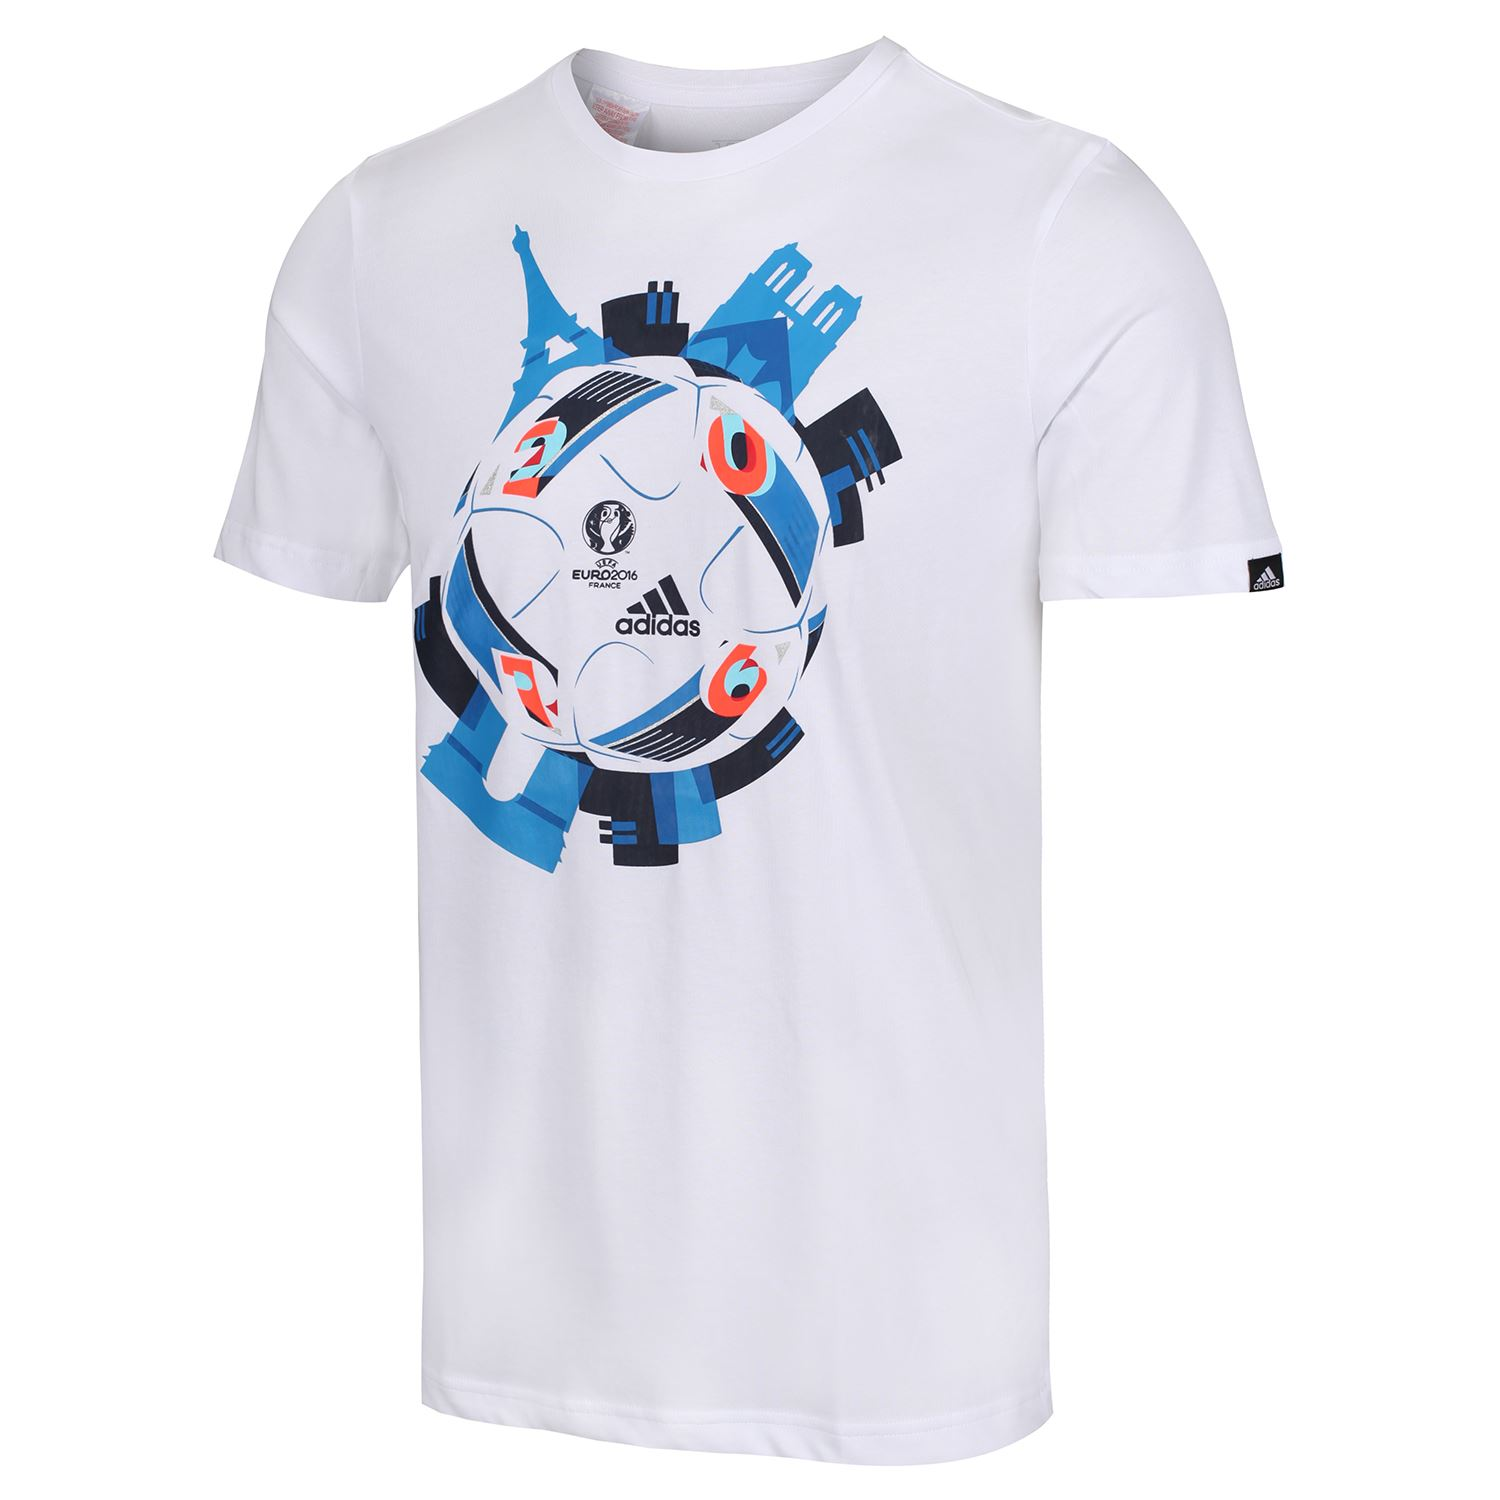 miniature 10 - Adidas-Enfants-Sports-T-Shirt-Garcons-Filles-9-10-To-15-16-ans-football-Crew